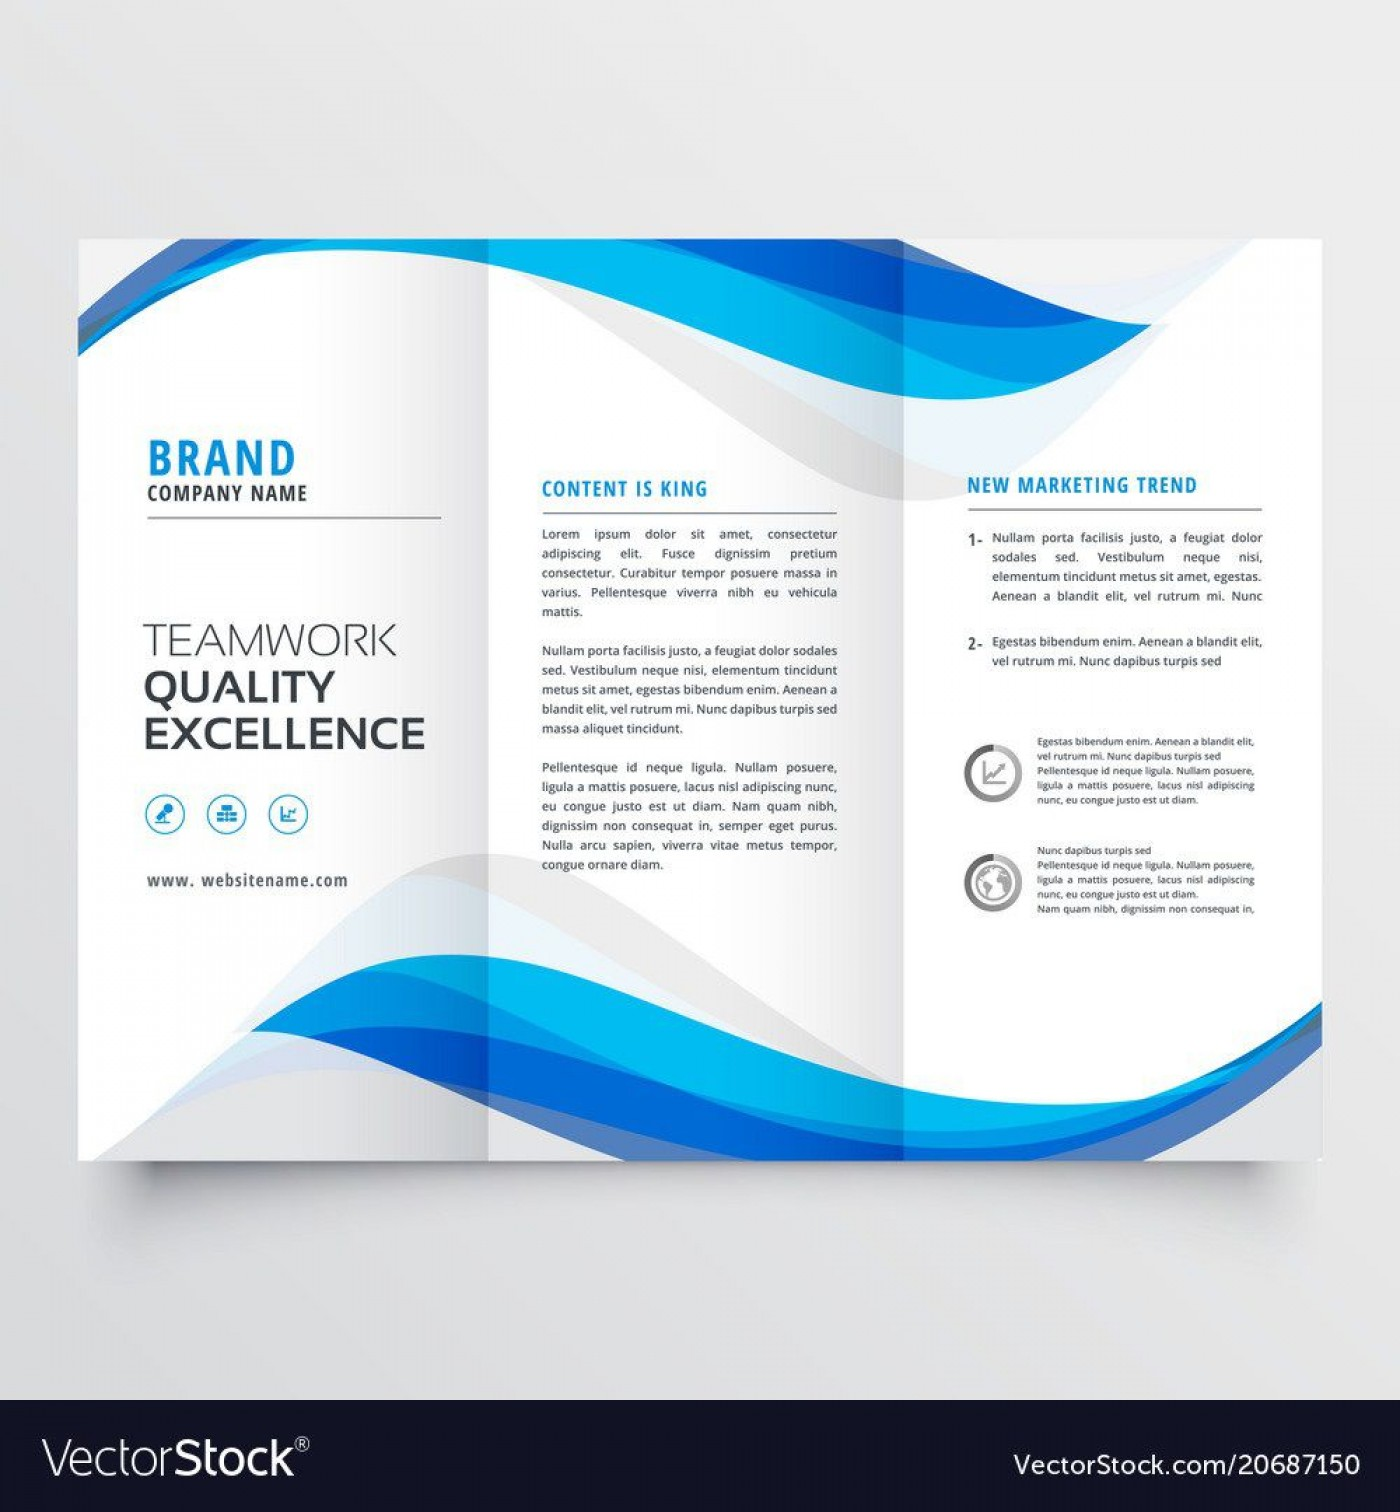 005 Dreaded Brochure Template Free Download Inspiration  For Word 2010 Microsoft Ppt1400